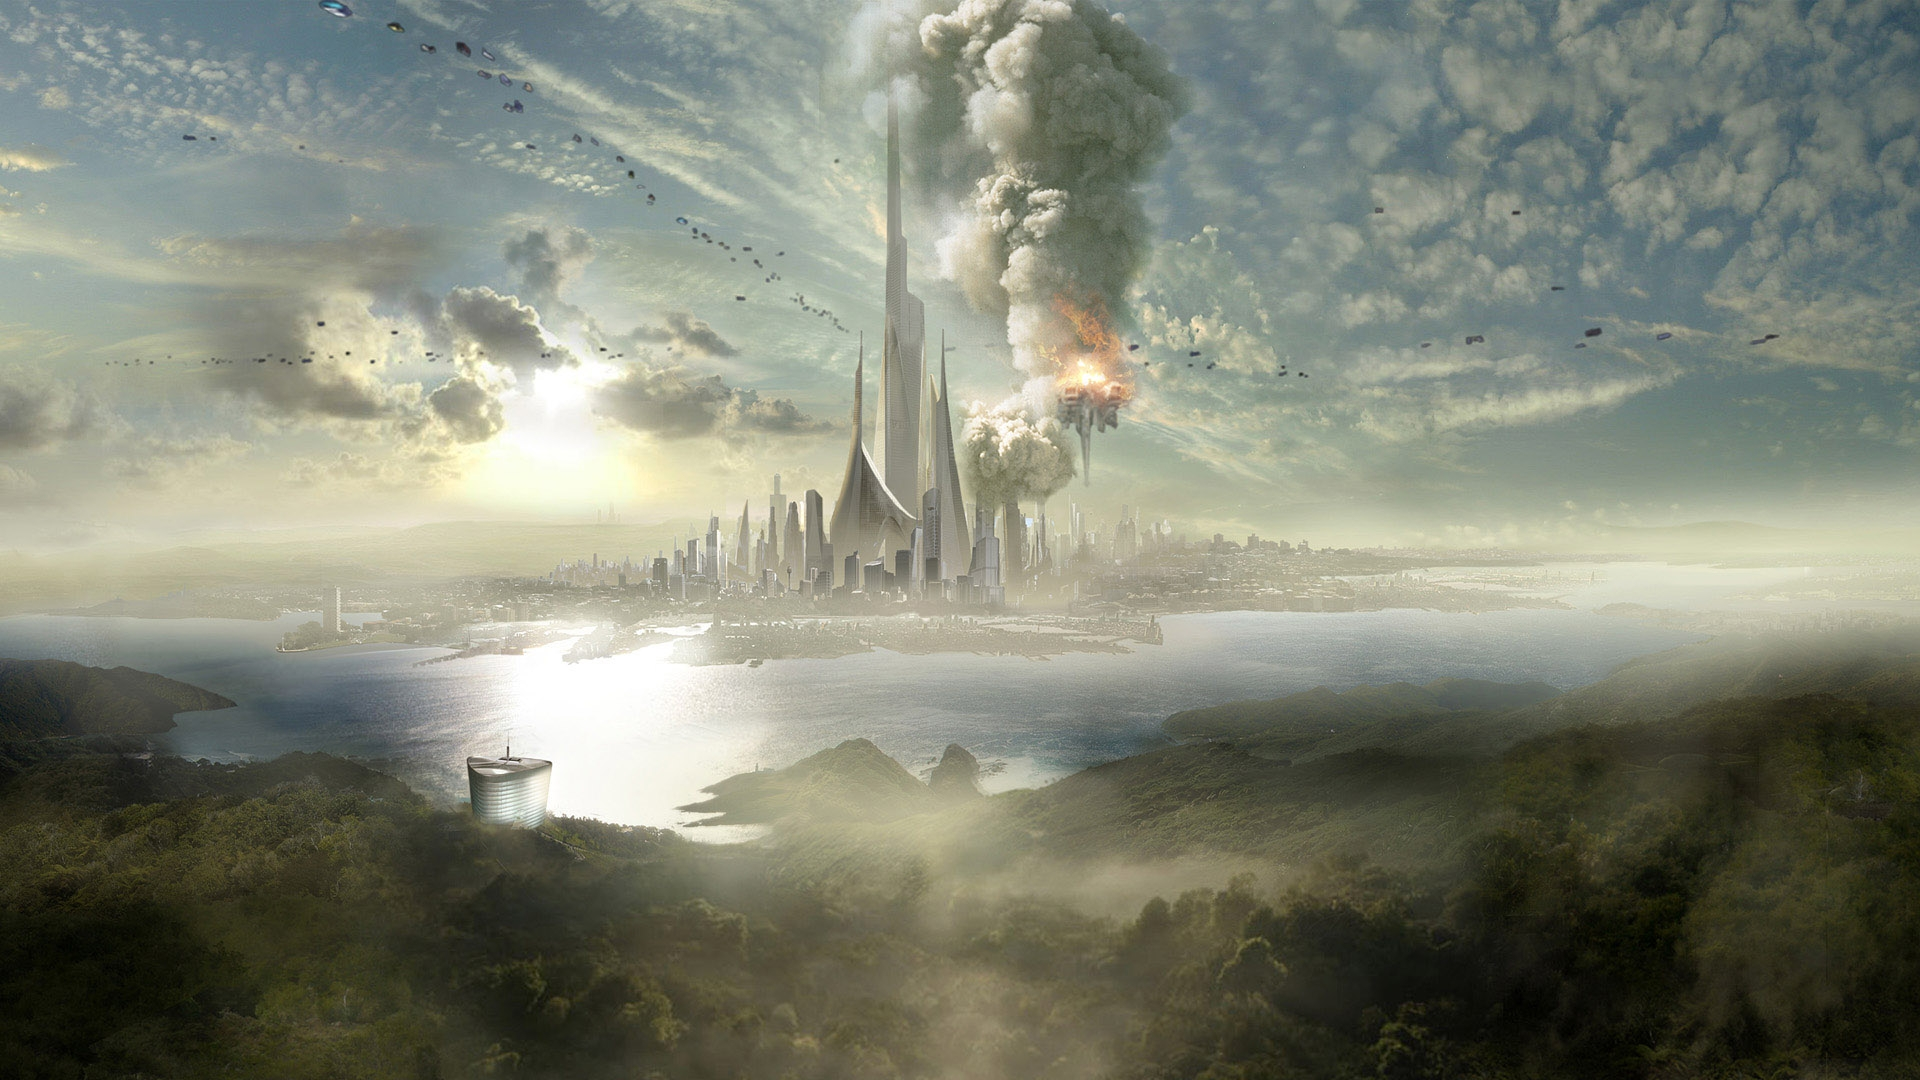 D Fantasy Places Hd Wallpapers 1920x1080 Space Fantasy Wallpaper Set 83 171 Awesome Wallpapers